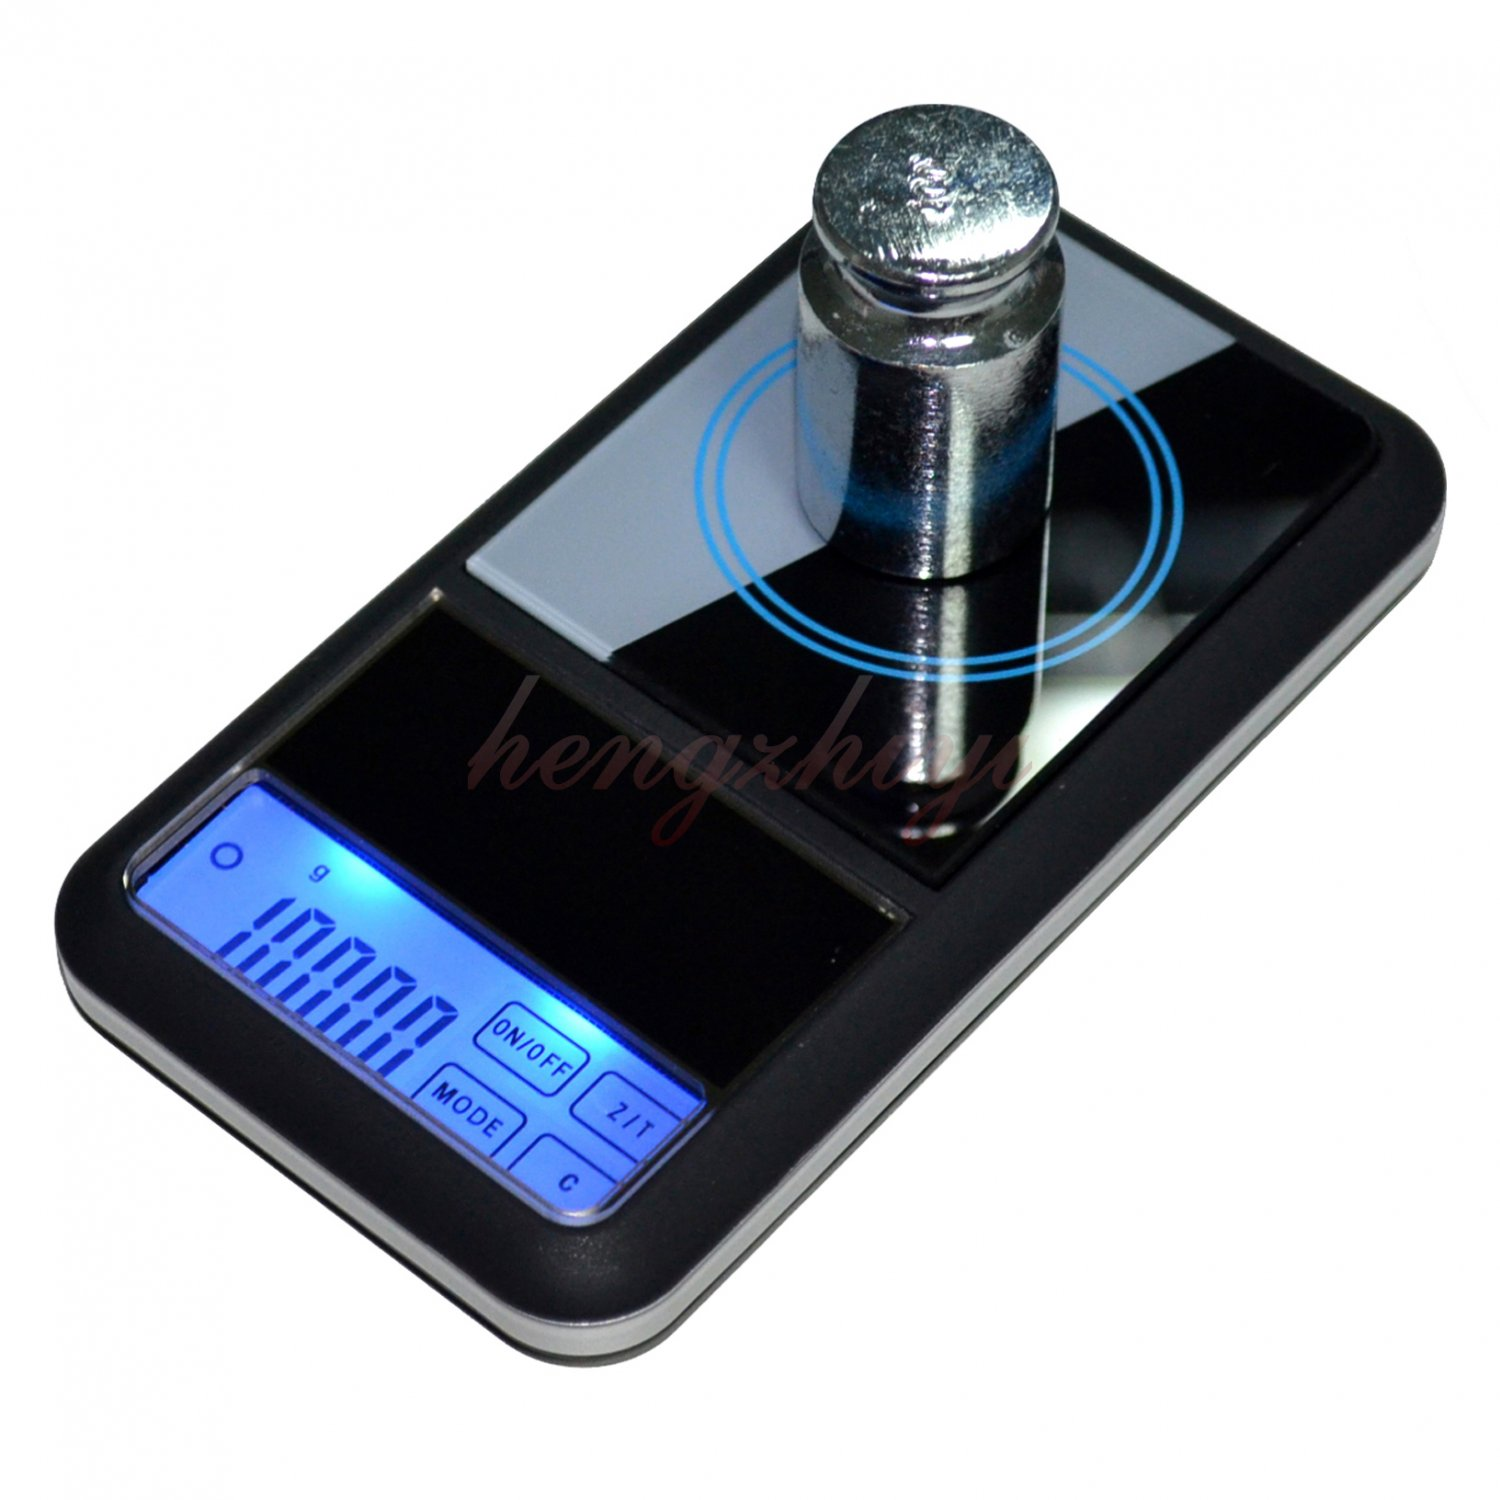 100g x 0.01g Electronic Touch Screen Jewelry Gold Carat Scale Balance w Counting, Free Shipping